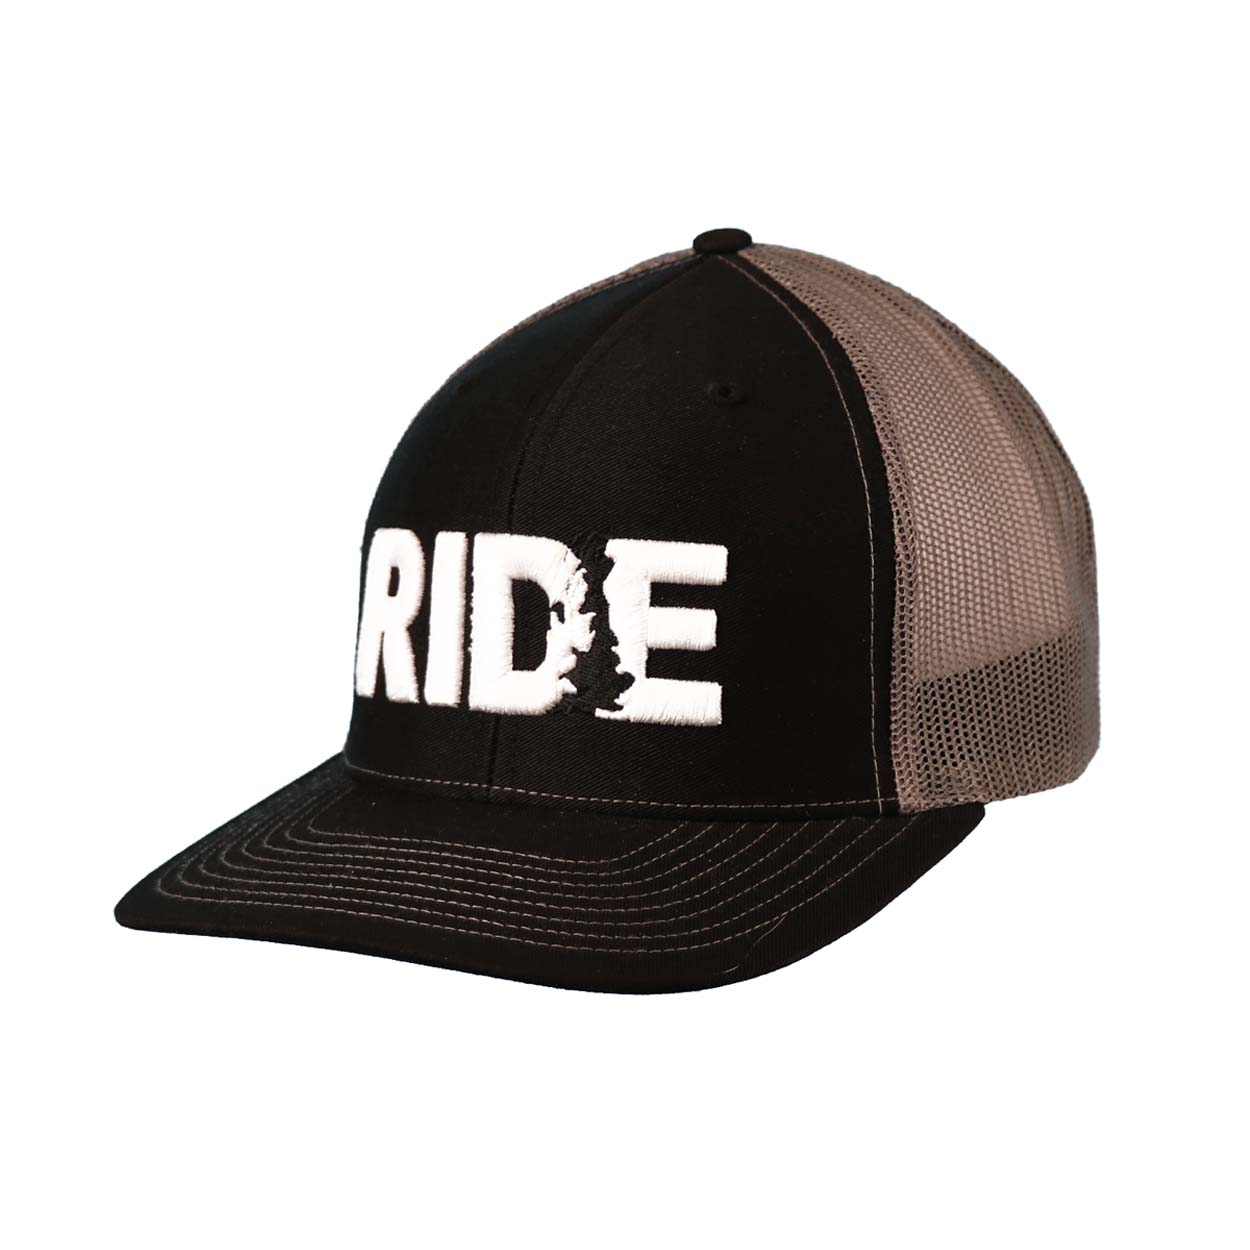 Ride United Kingdom Classic Embroidered Snapback Trucker Hat Black/White